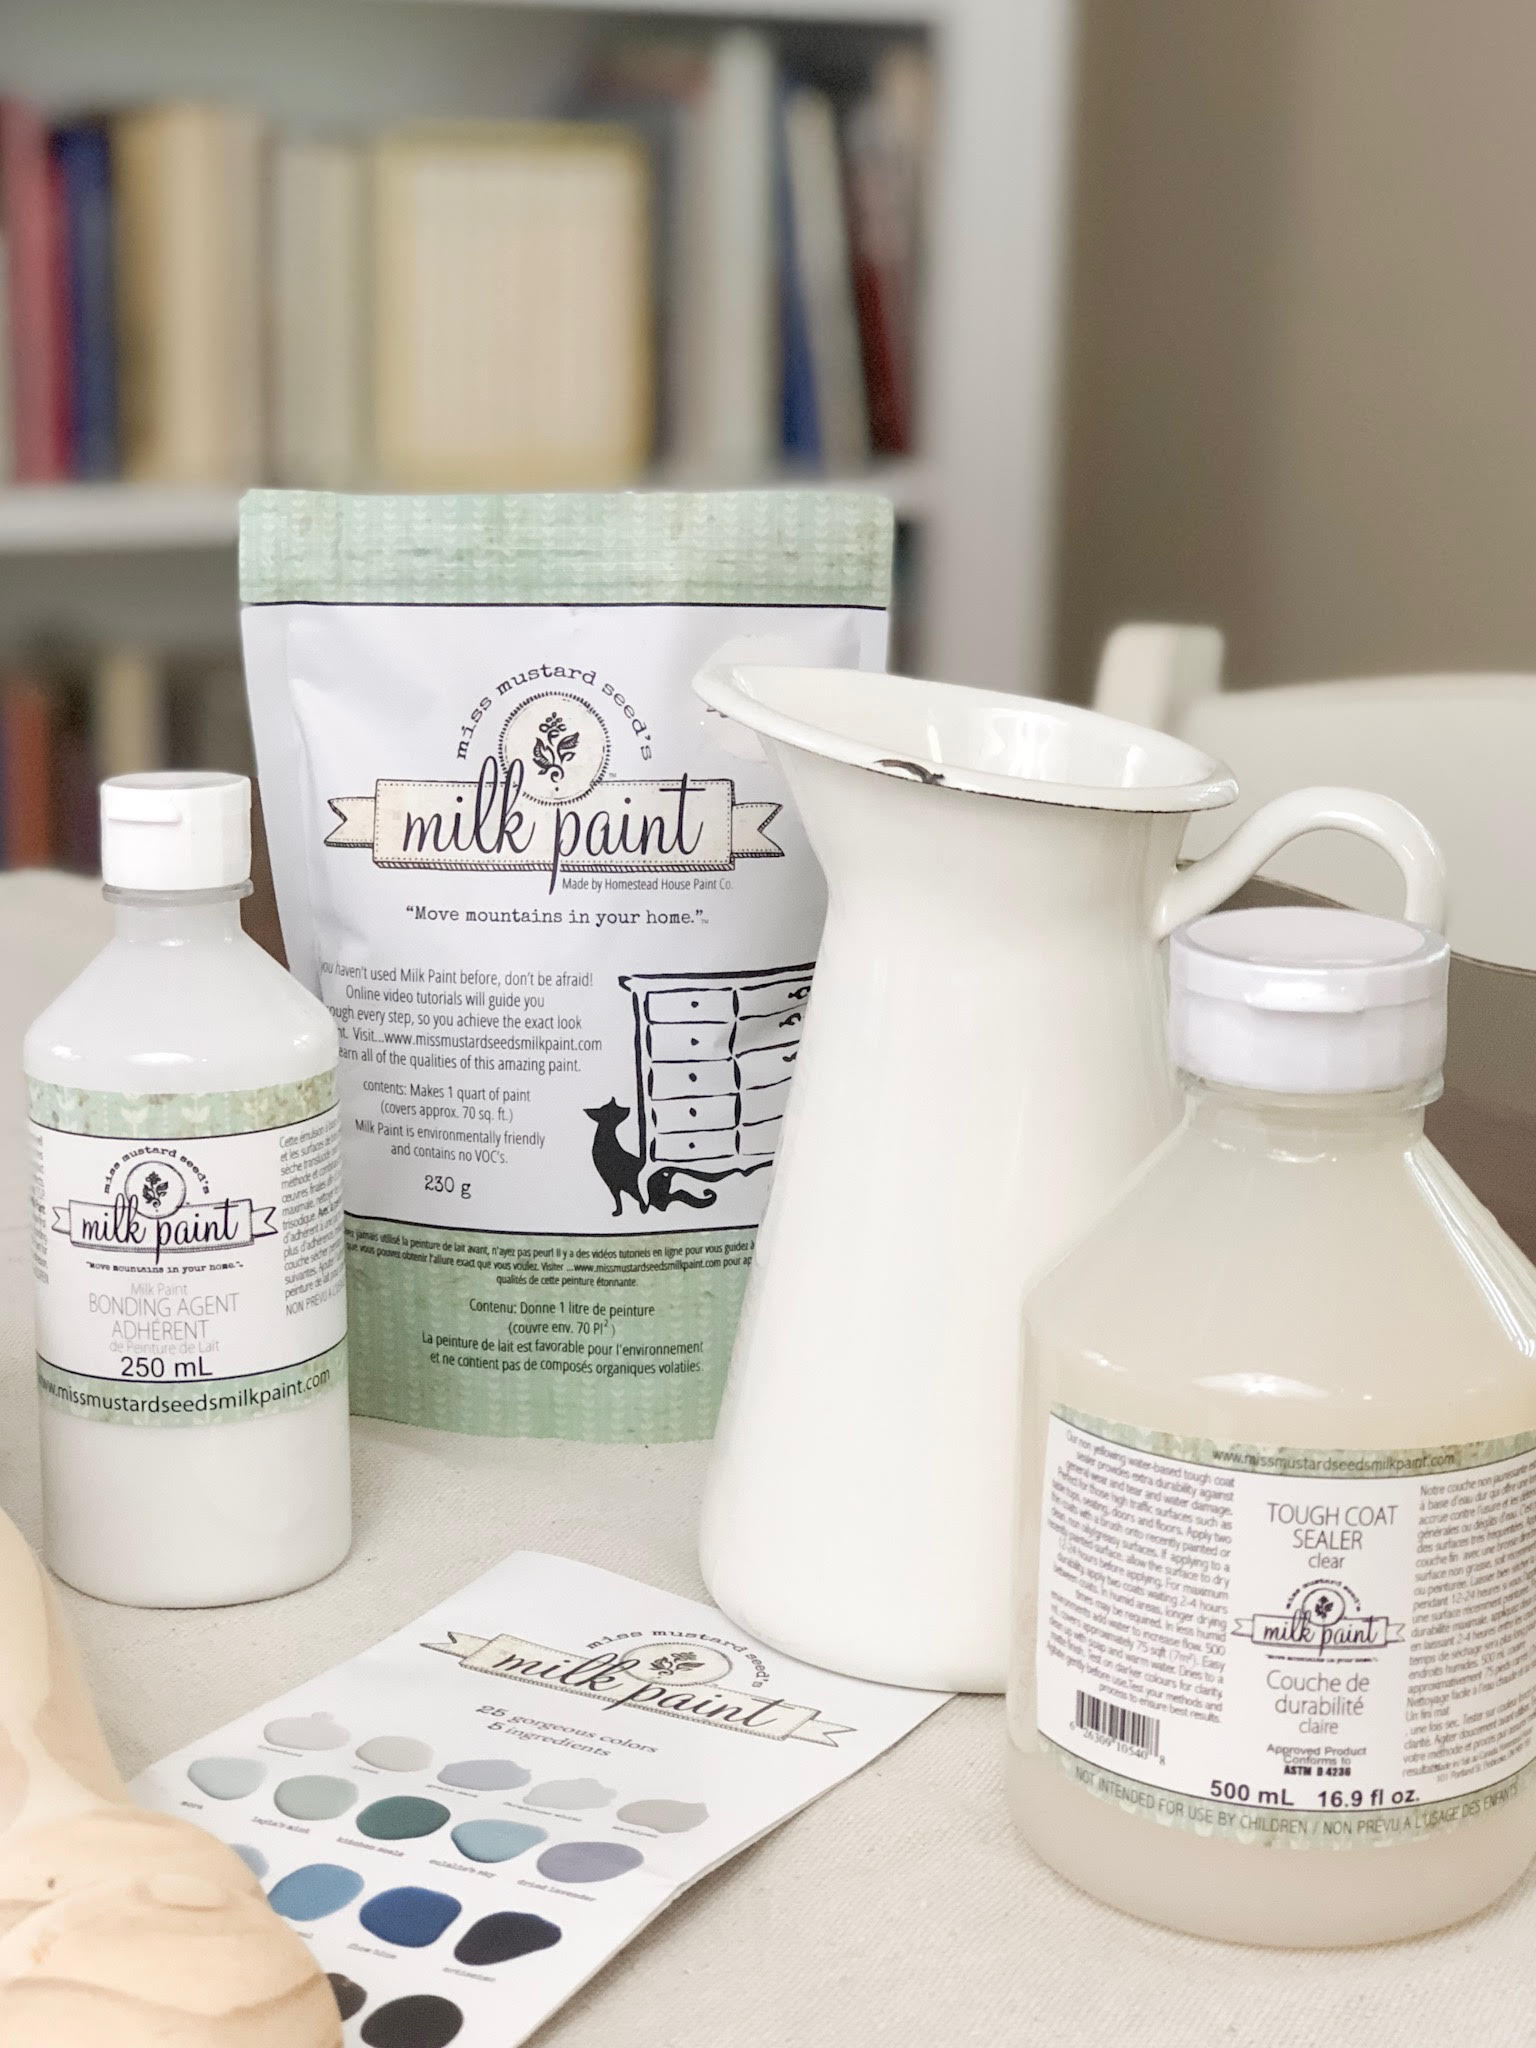 How to paint with milk paint using Miss Mustard Seed paints and other products